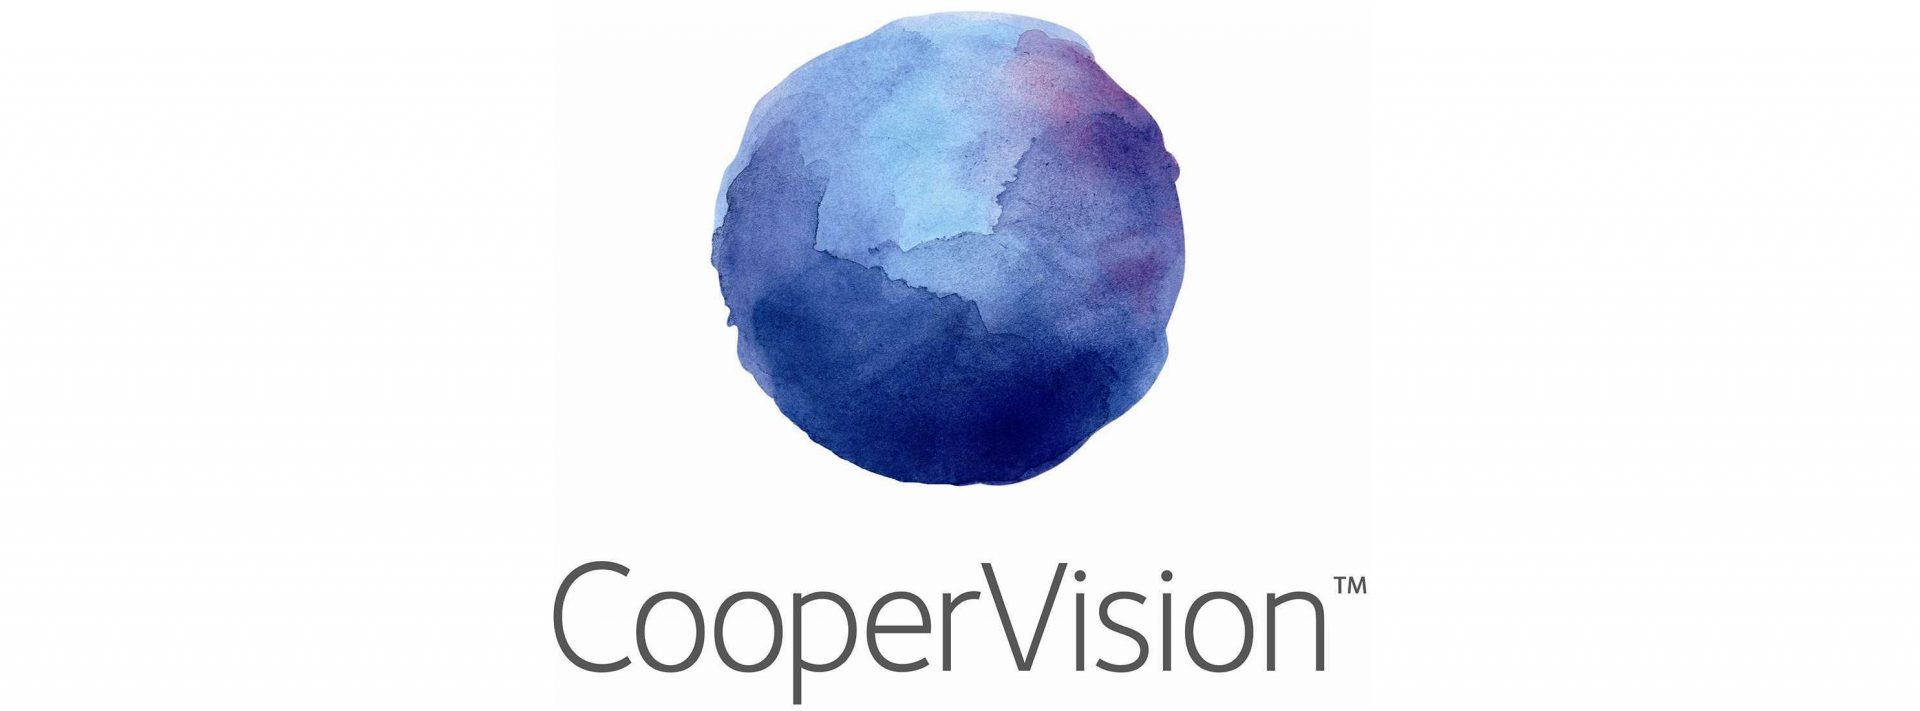 Contact Lenses: CooperVision